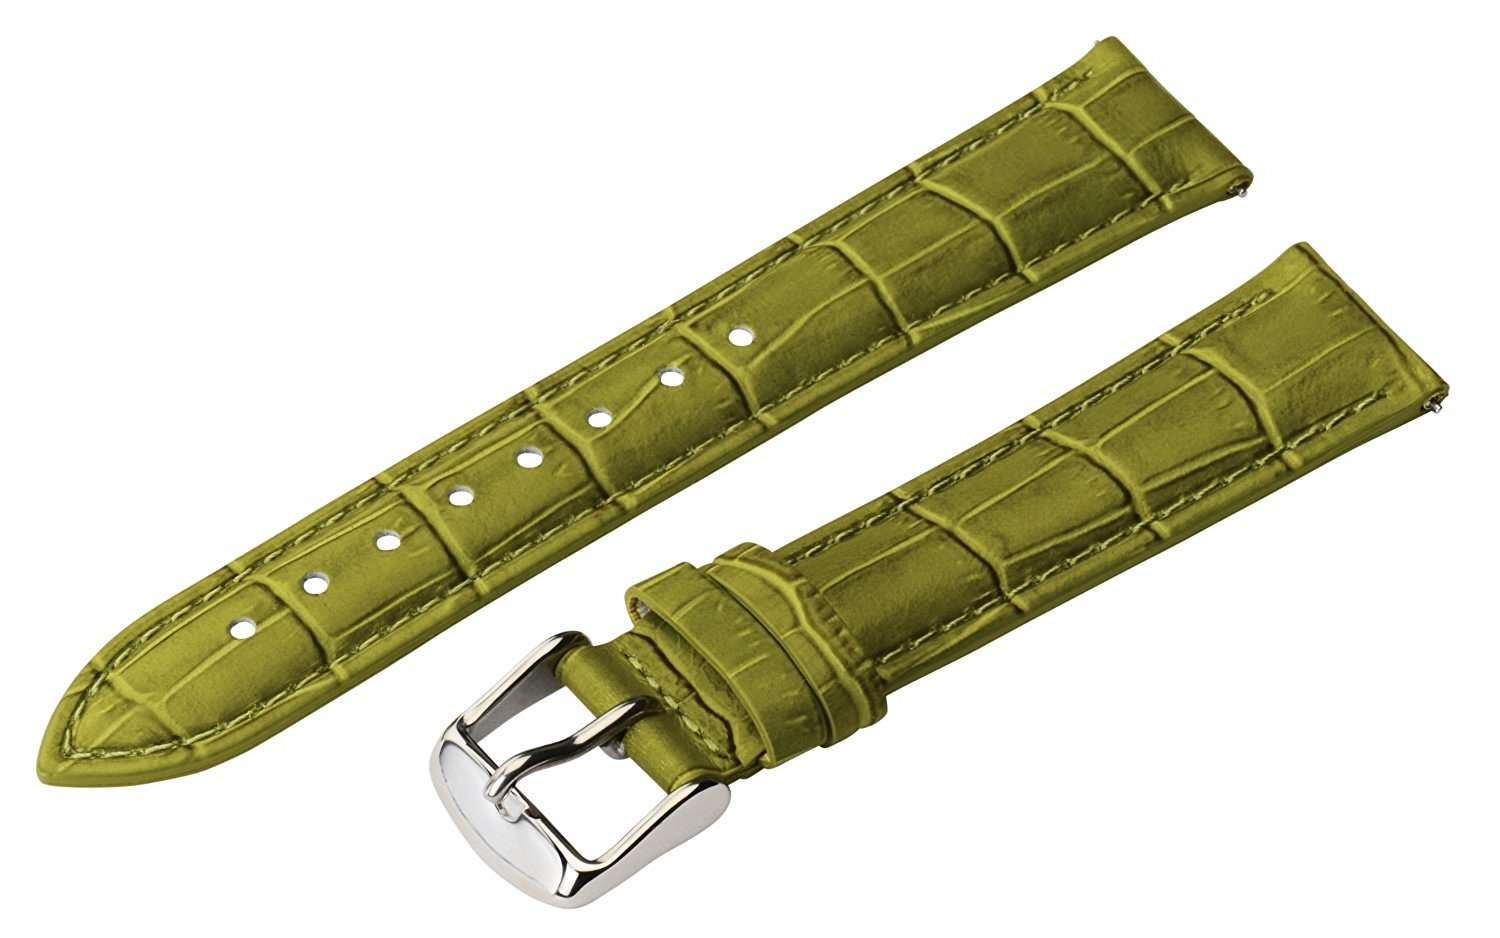 20mm 2 Piece Ss Leather Classic Croco Grain Olive Green Interchangeable Replacement Watch Band Strap